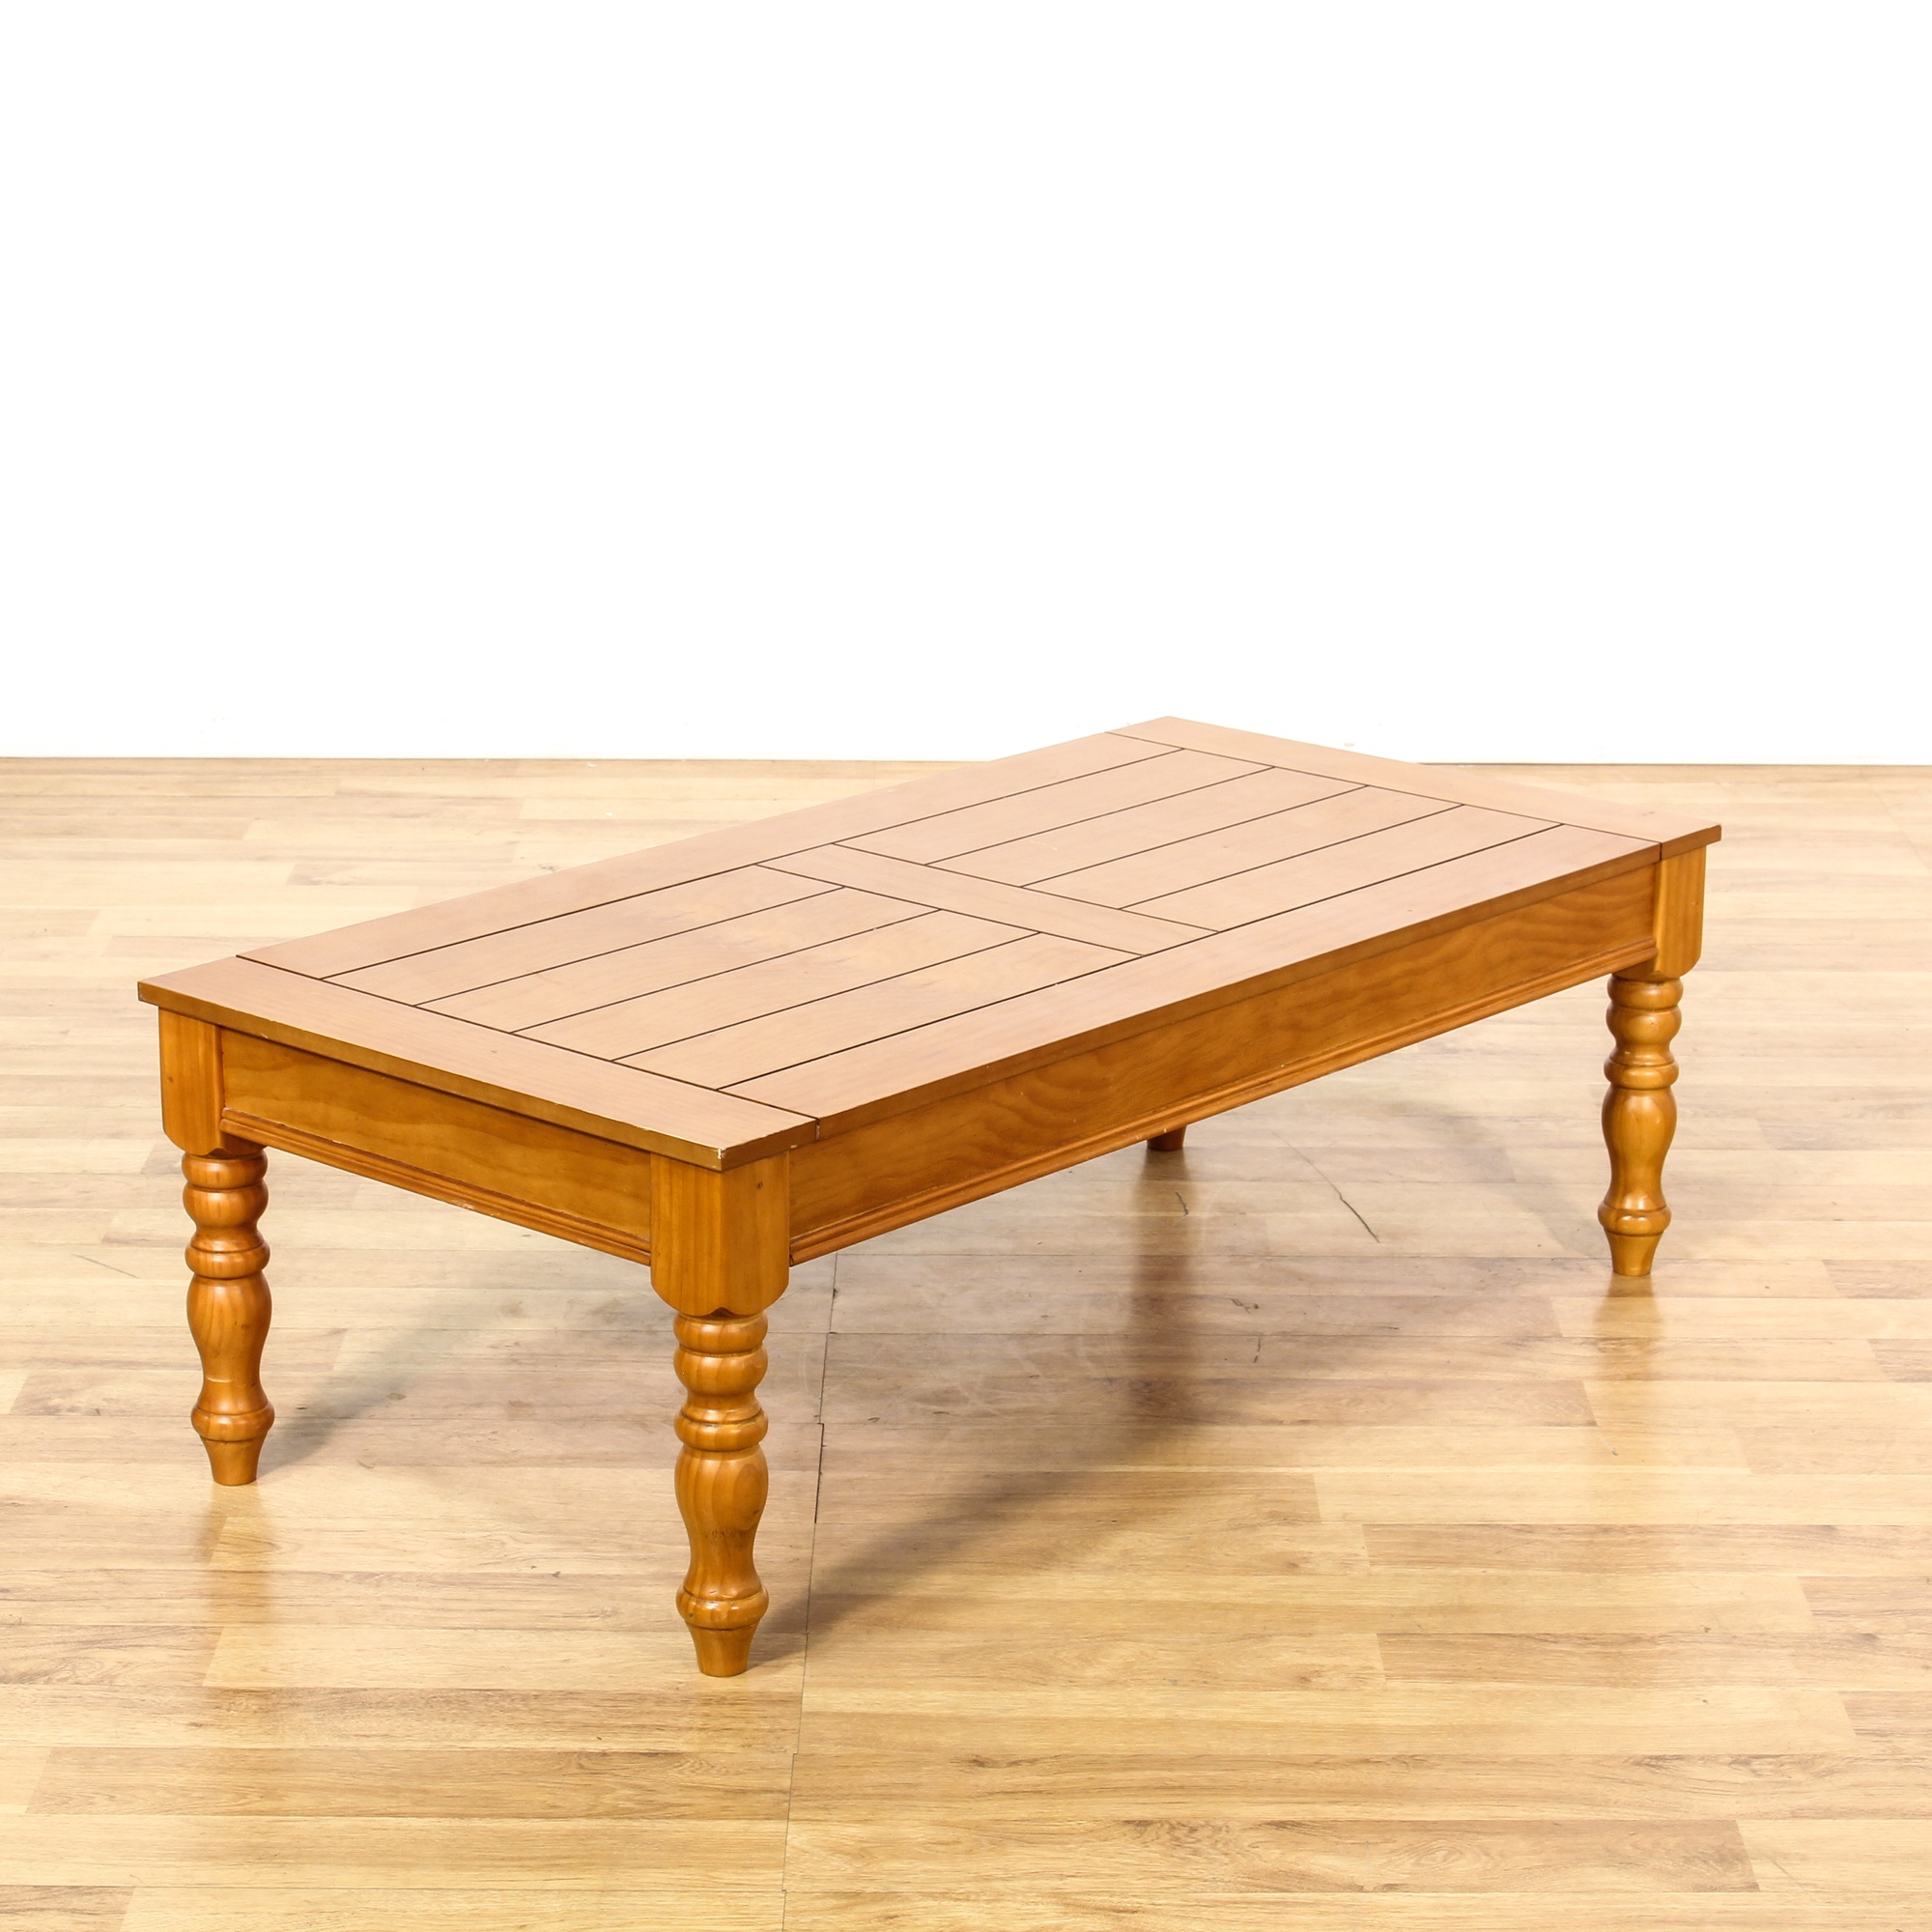 Rustic Pine Wood Coffee Table: Rustic Country Pine Stained Coffee Table 2